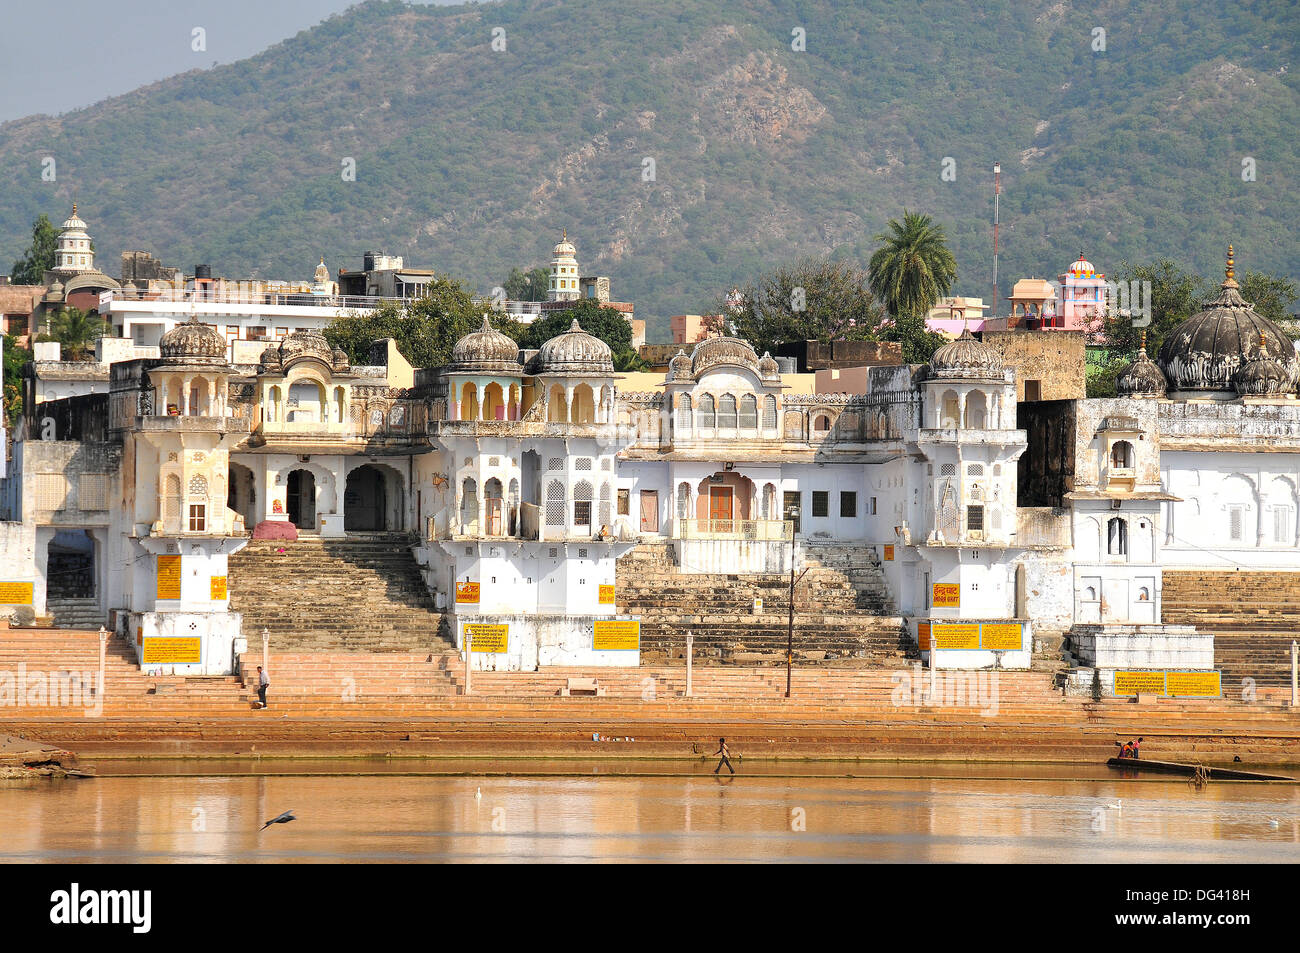 Ghats At Holy Pushkar Lake And Old Rajput Palaces, Pushkar Stock ...